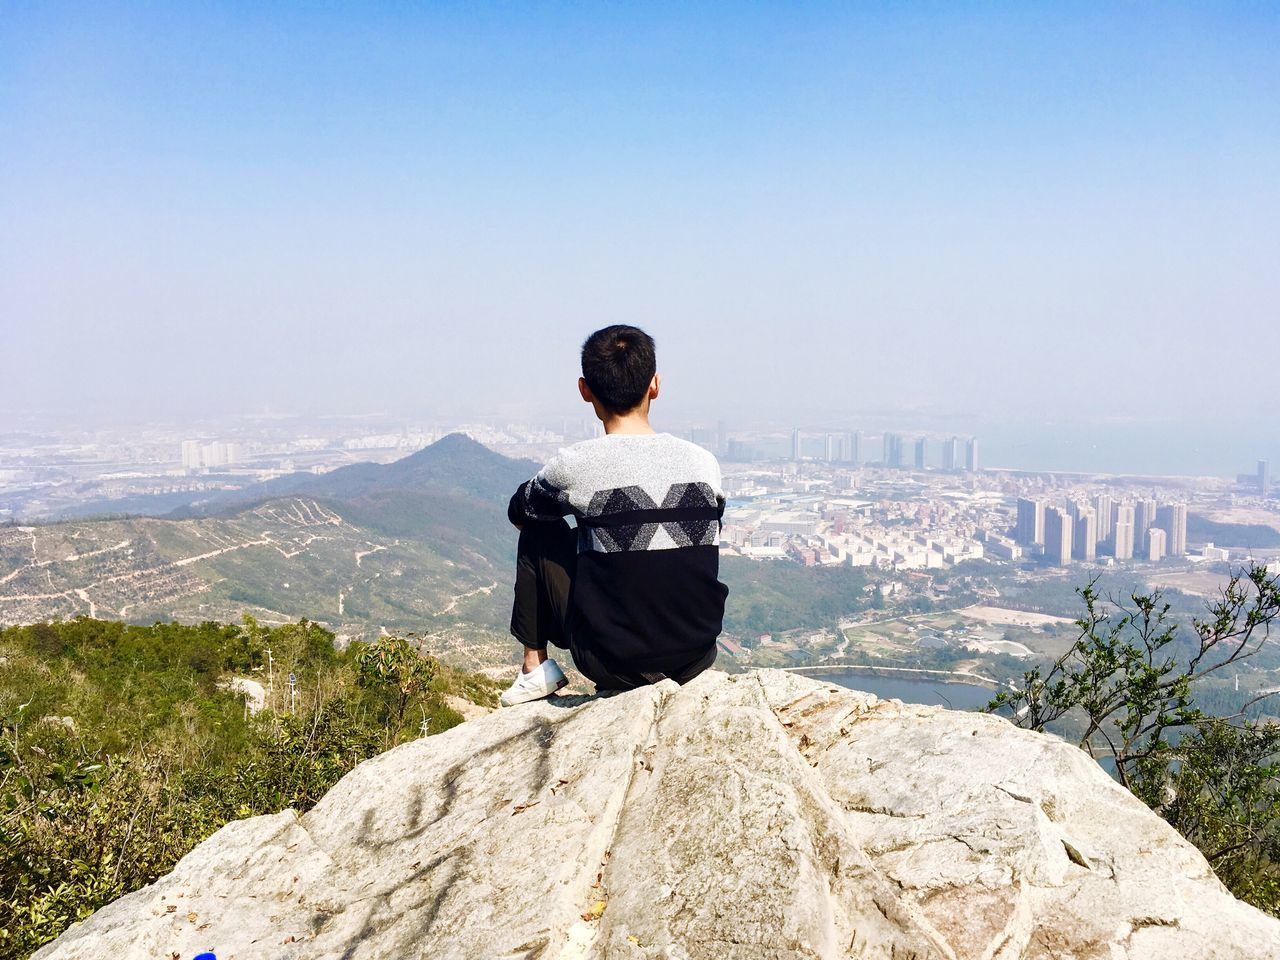 Rear View Of Man Sitting On Rock While Looking At Landscape Against Sky From Mountain Peak